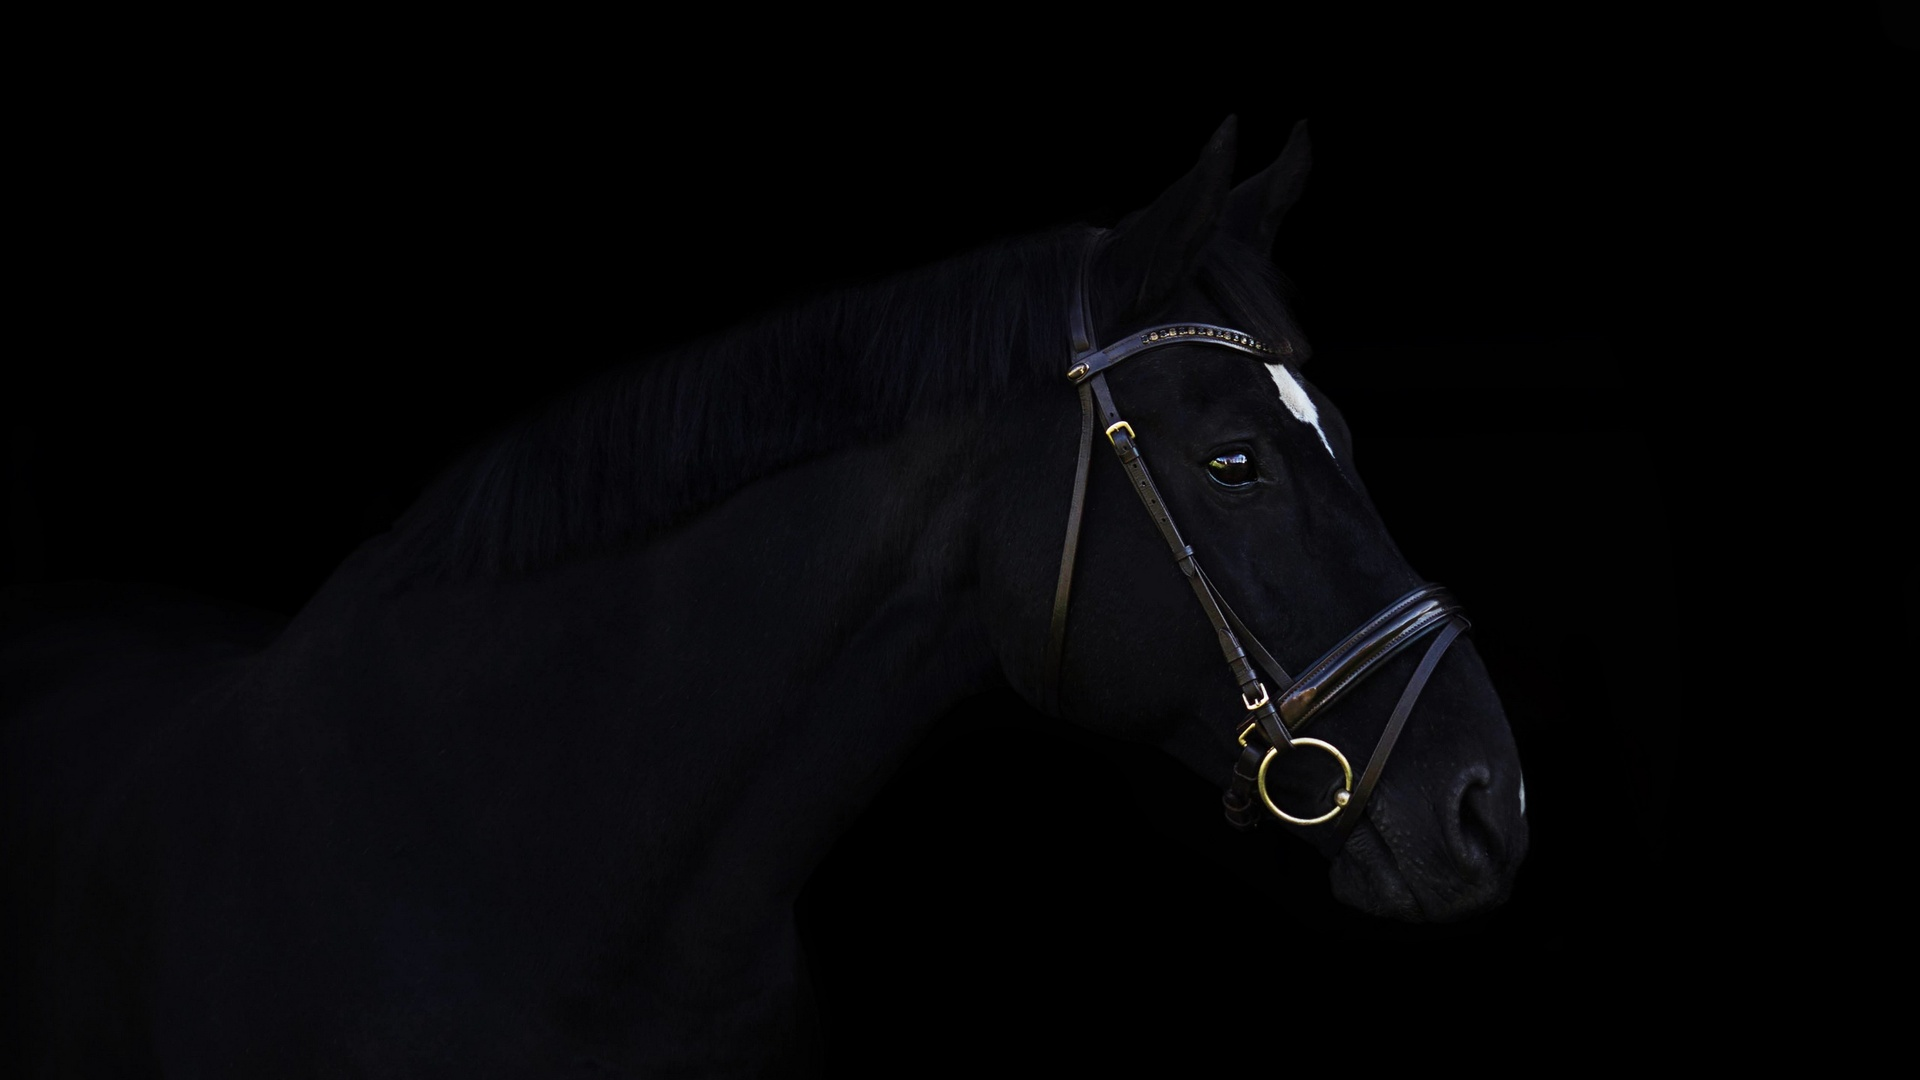 Top Five Black Horse Images Hd 1080p